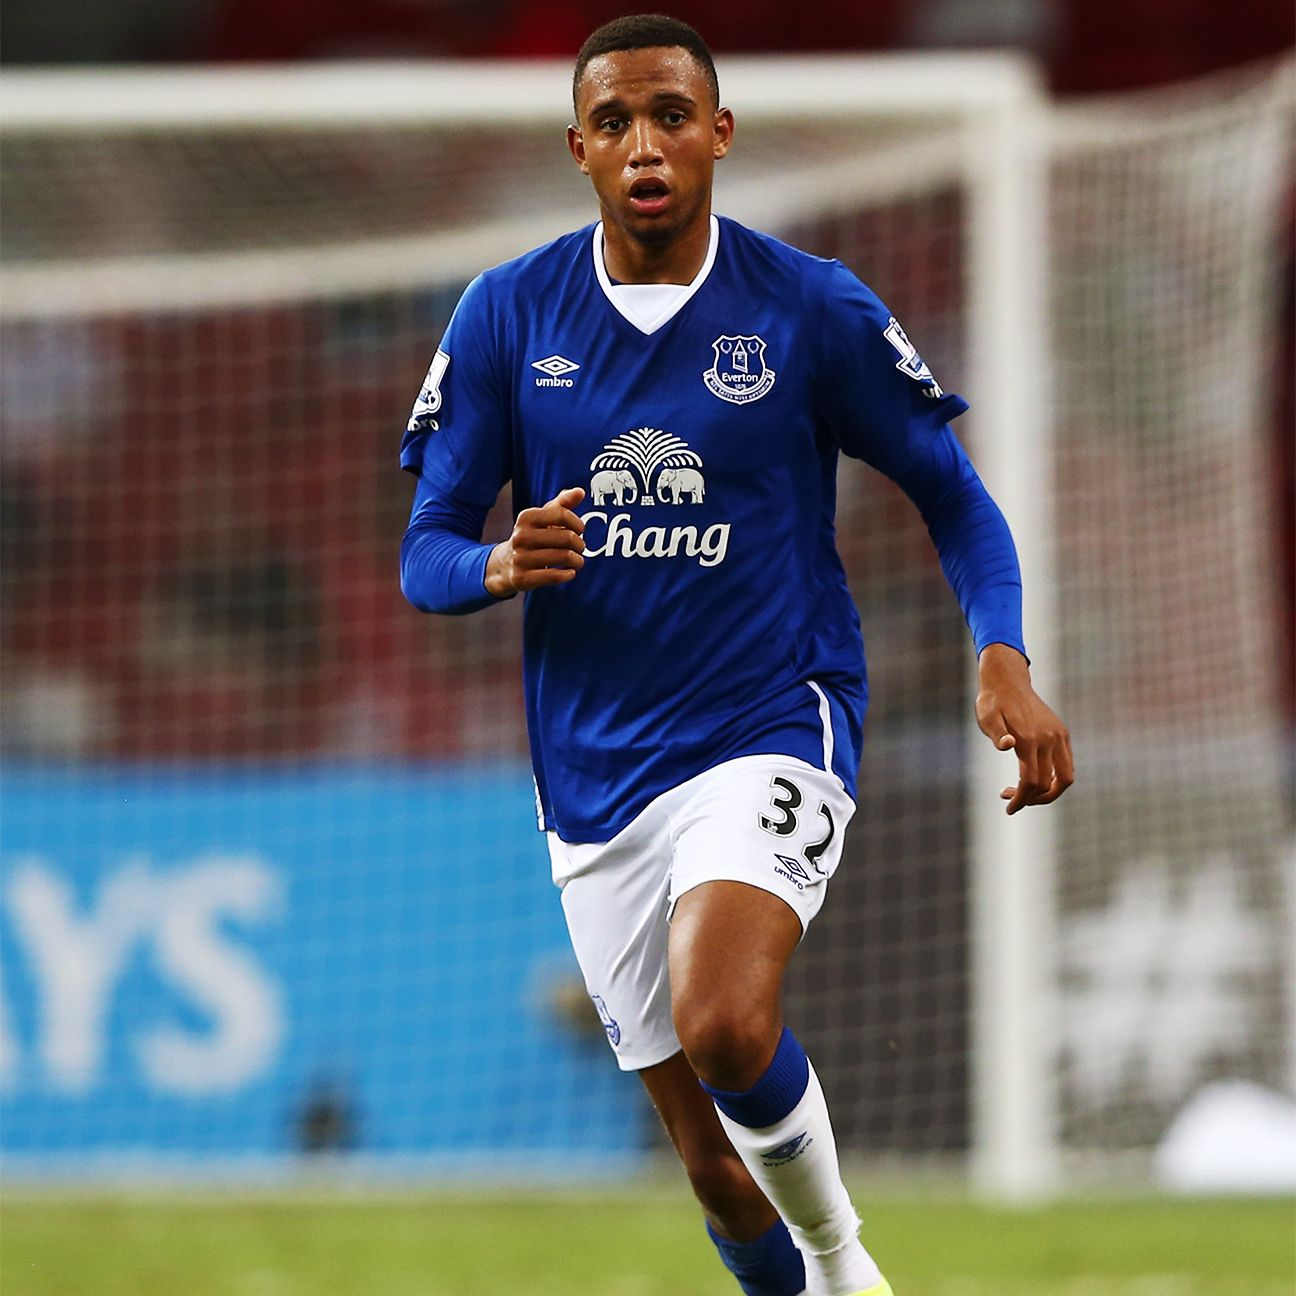 Brendan Galloway could be called upon to help correct the defensive woes felt by Everton in 2014-15.